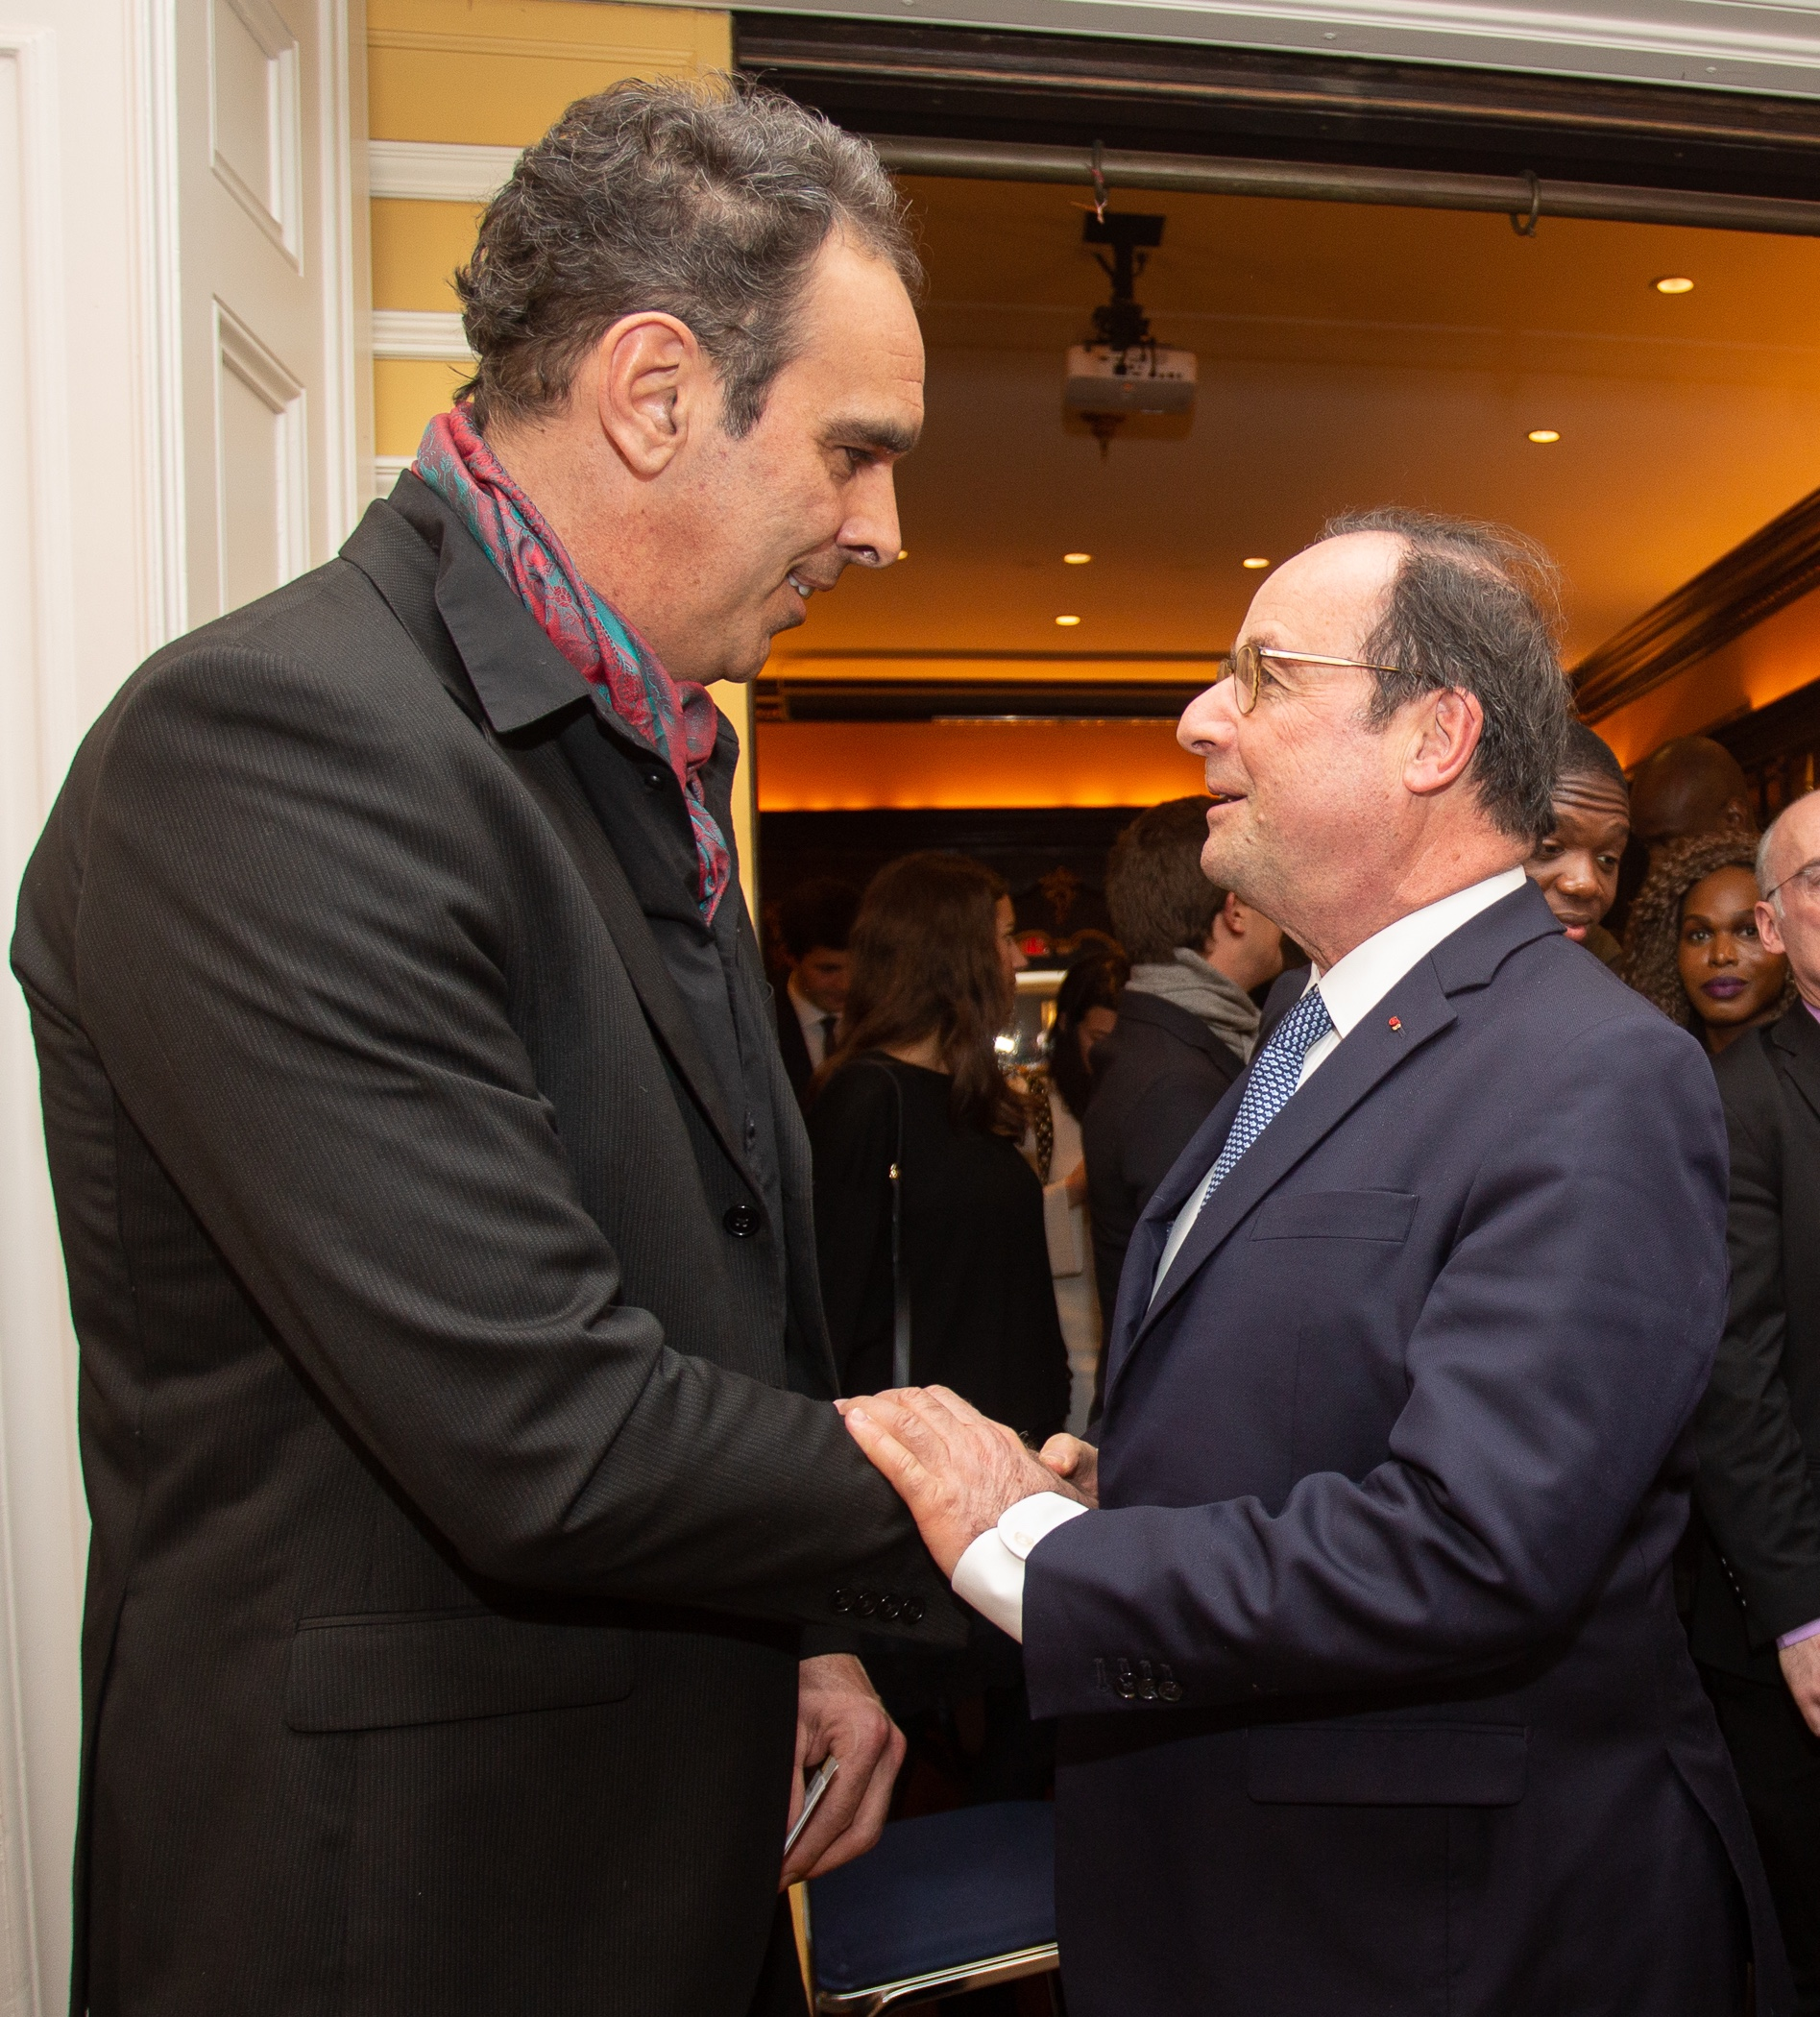 Former President of the French Republic François Hollande with FACCNE board member Alban Maino at the French Cultural Center on March 10, 2019